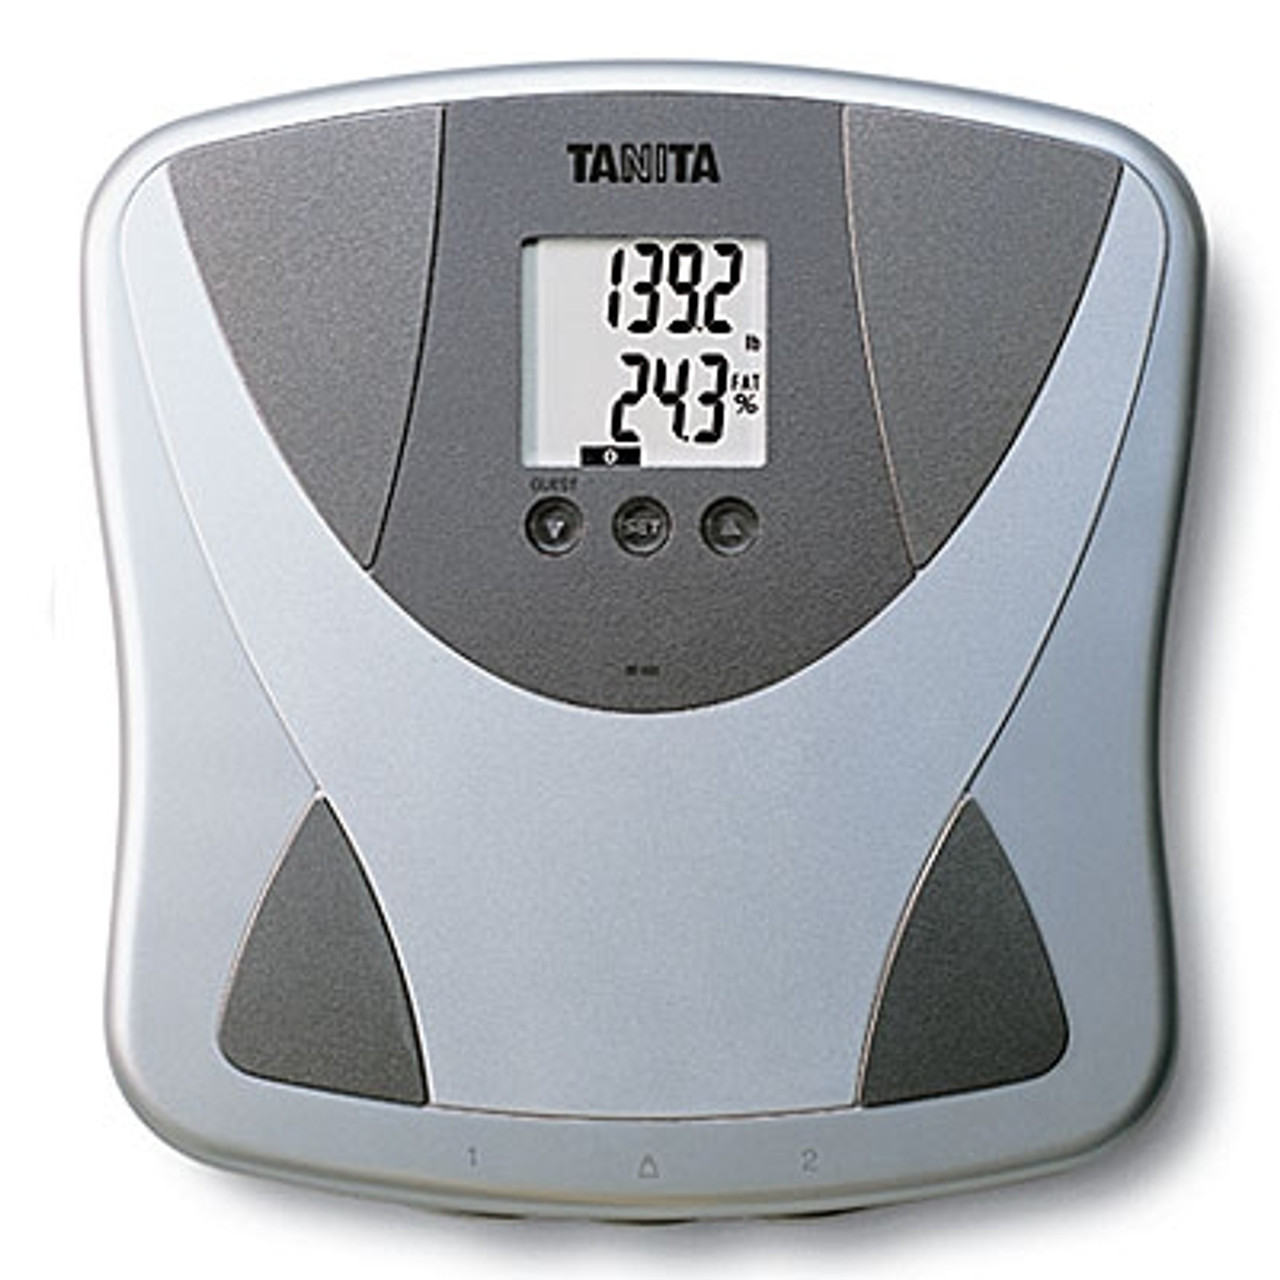 Remarkable Buy Tanita Body Fat Bathroom Weighing Scales Online Ph Download Free Architecture Designs Scobabritishbridgeorg